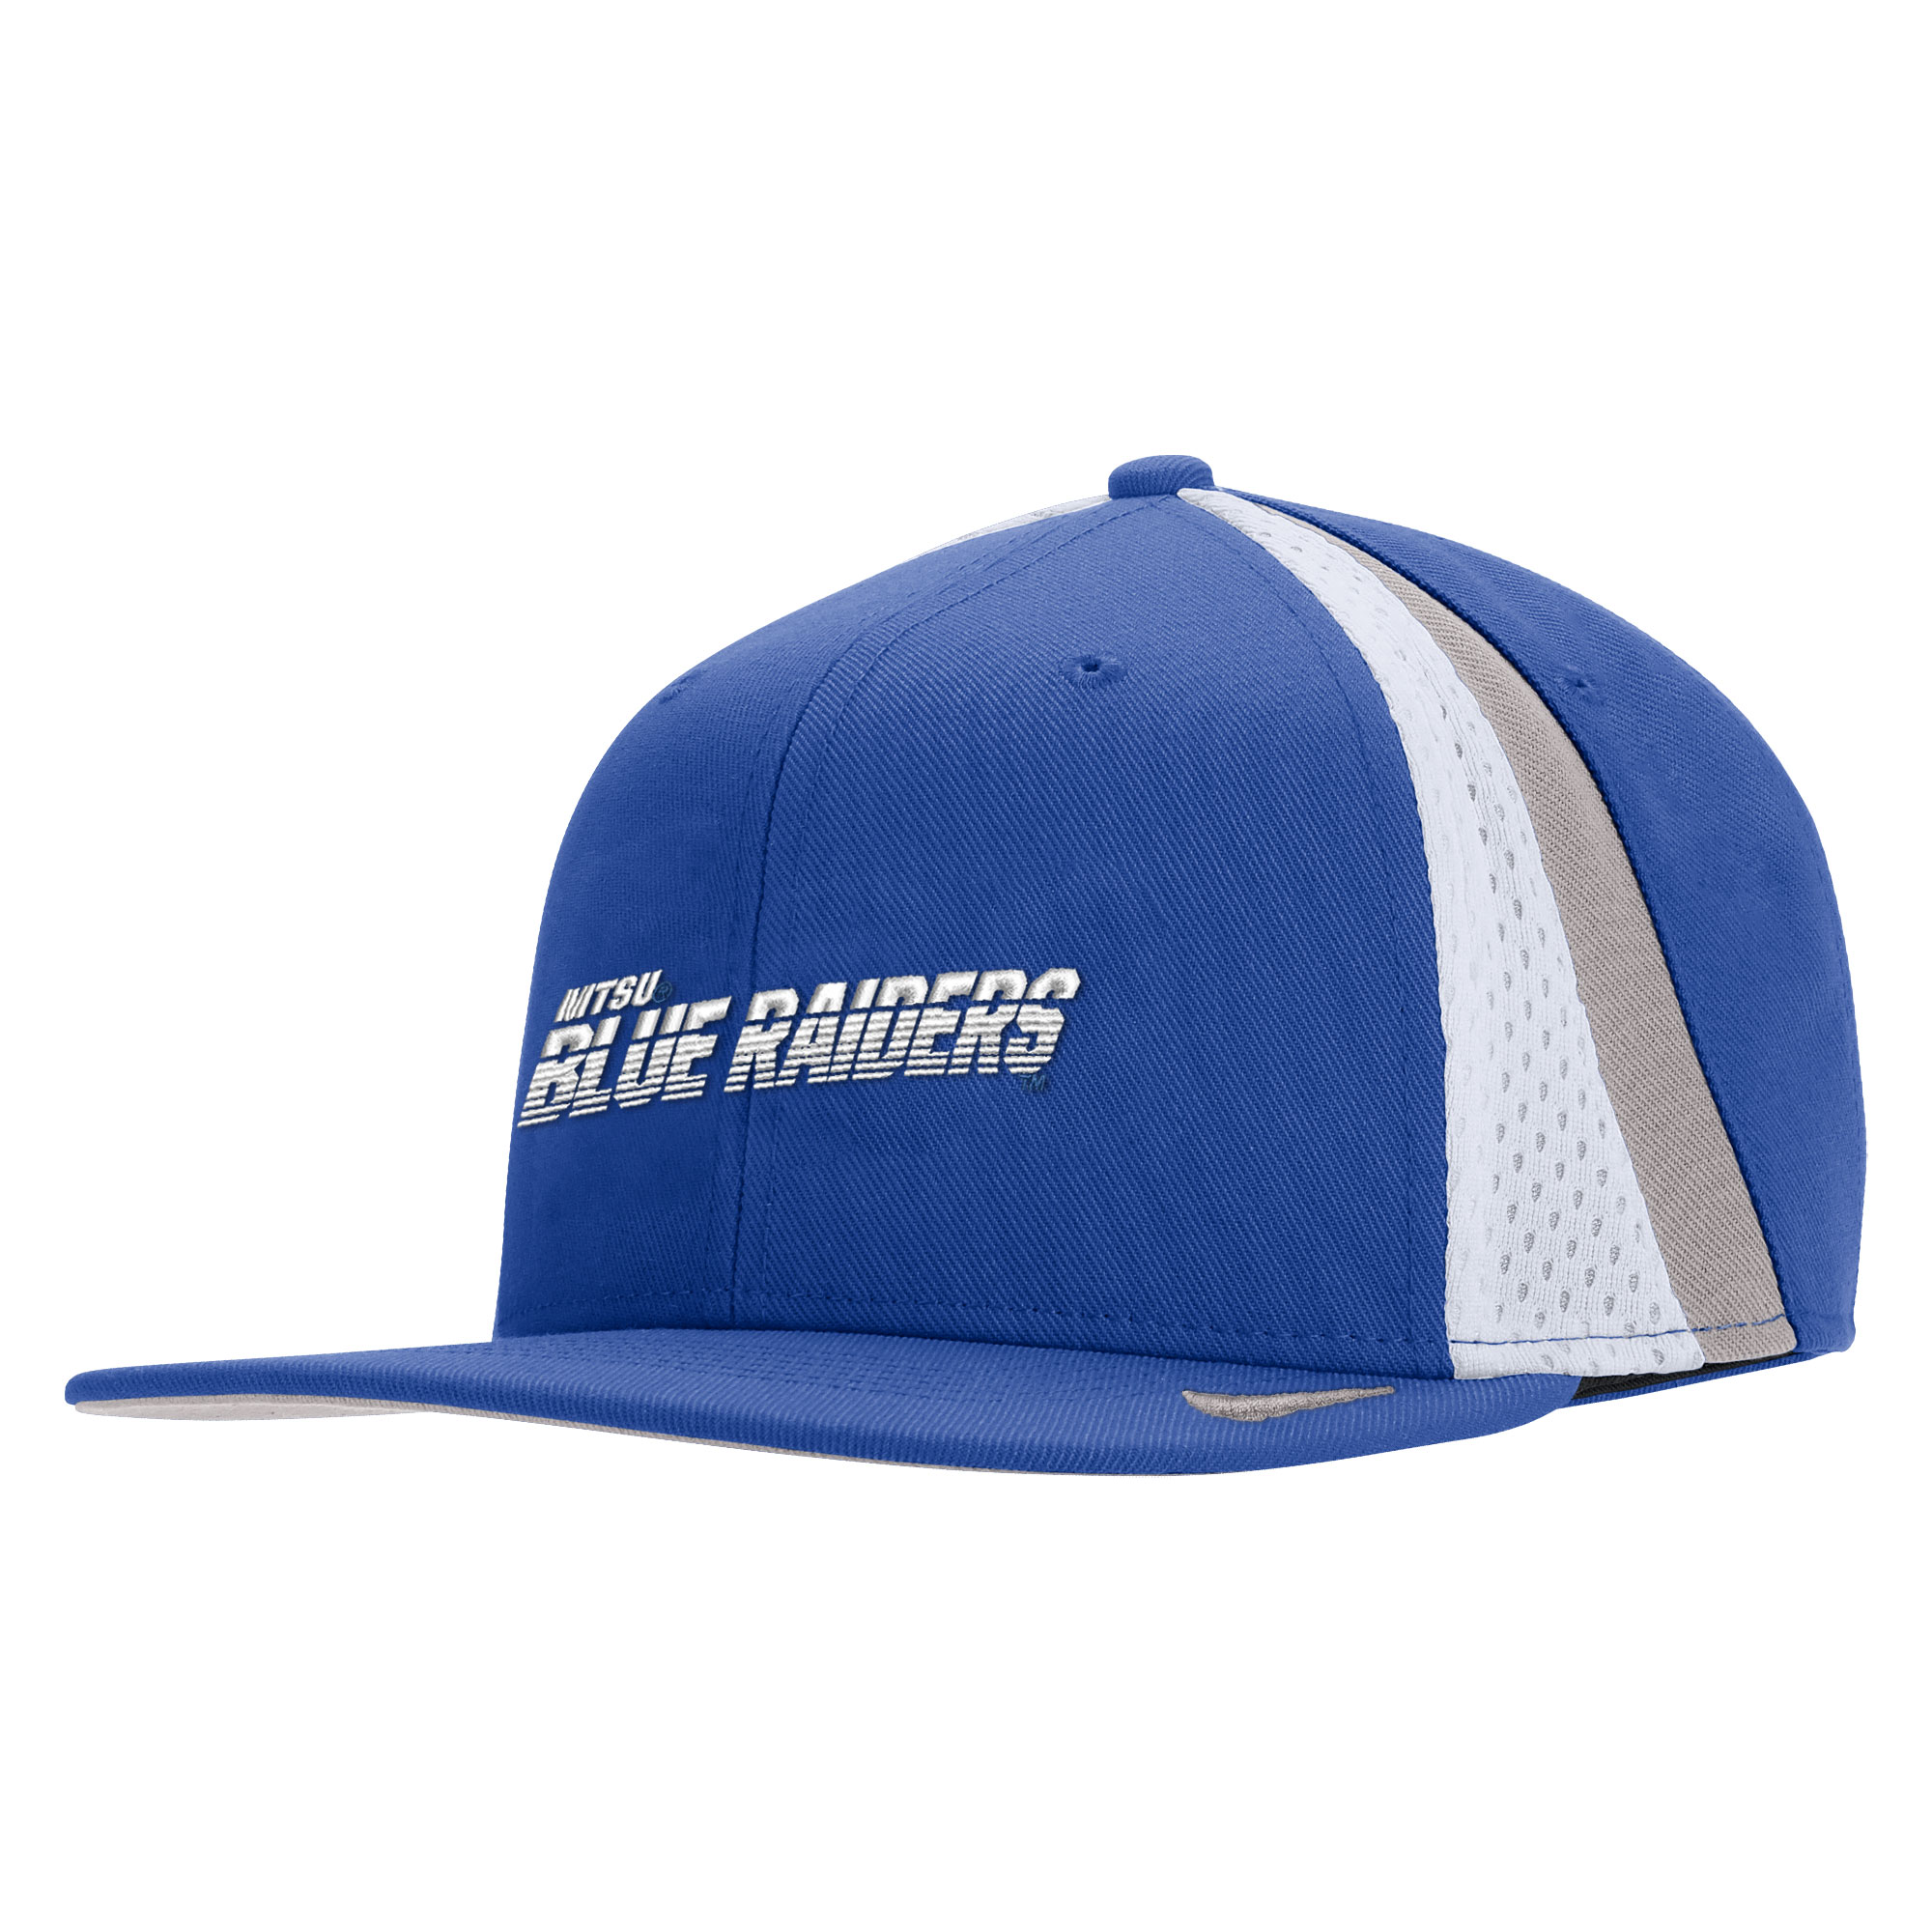 MTSU Blue Raiders 2019 Nike® Sideline Pro Adjustable